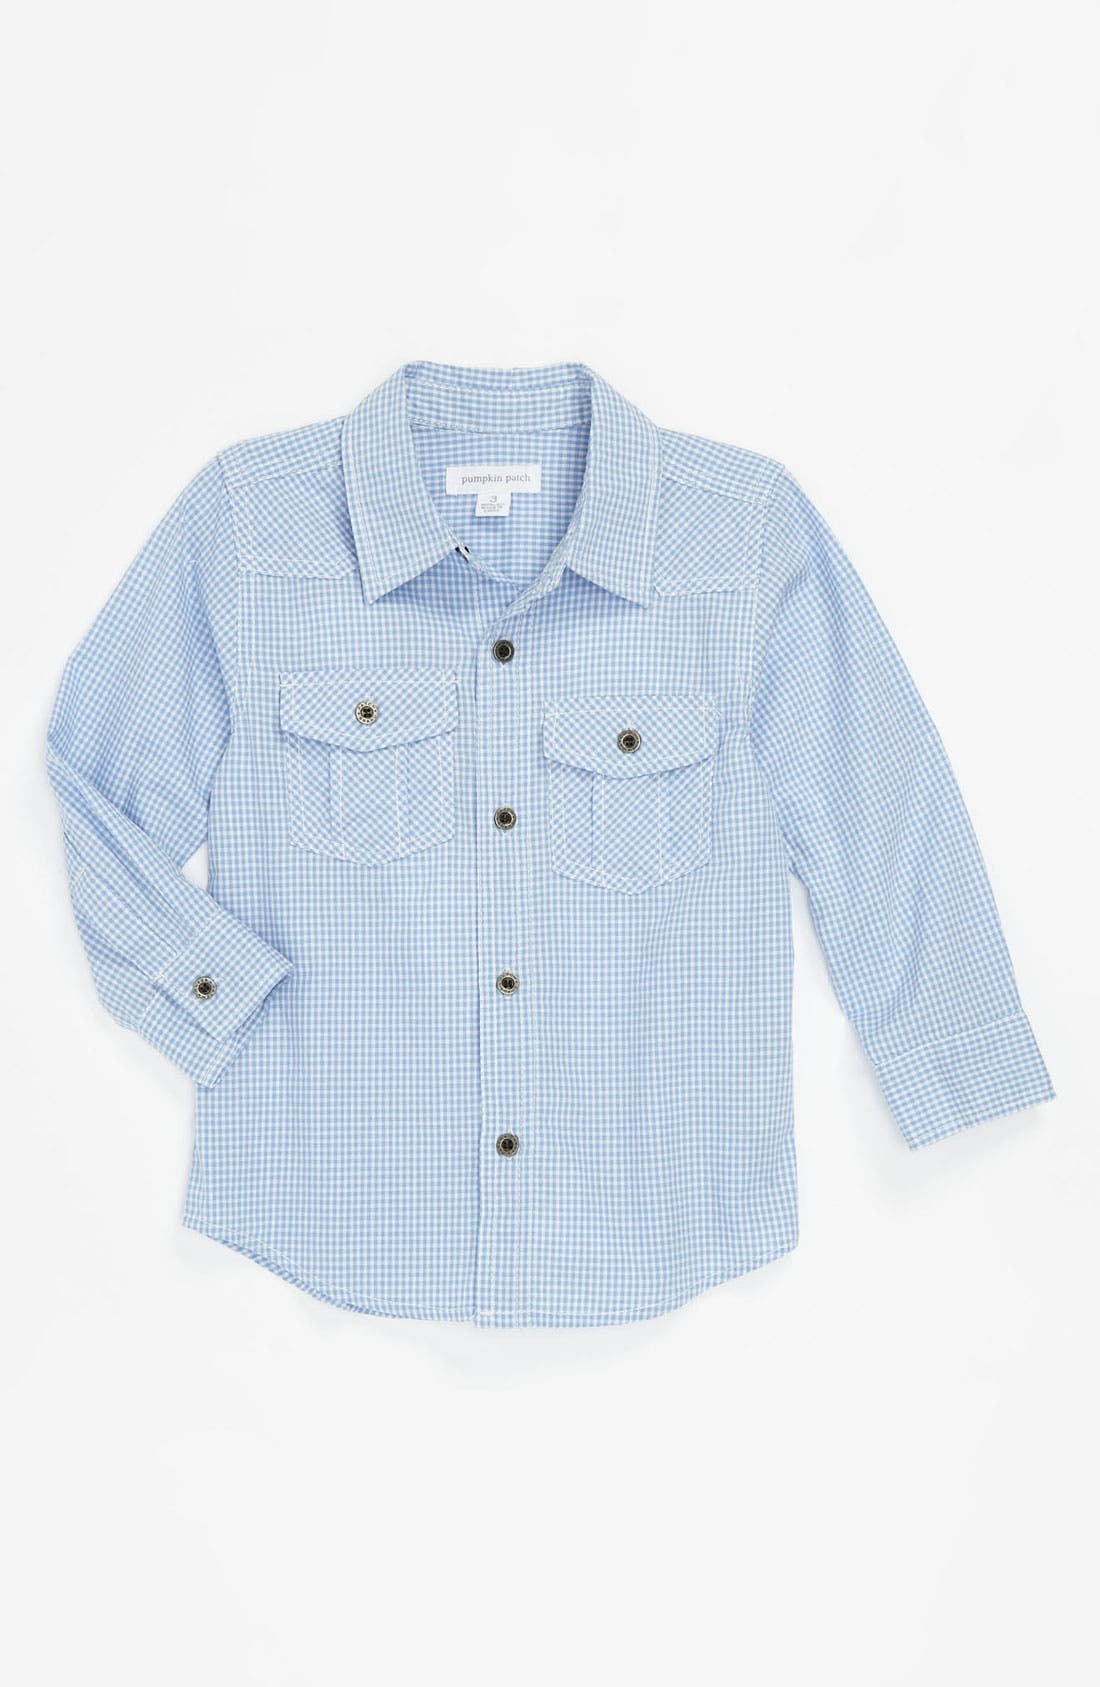 Alternate Image 1 Selected - Pumpkin Patch Gingham Shirt (Baby)